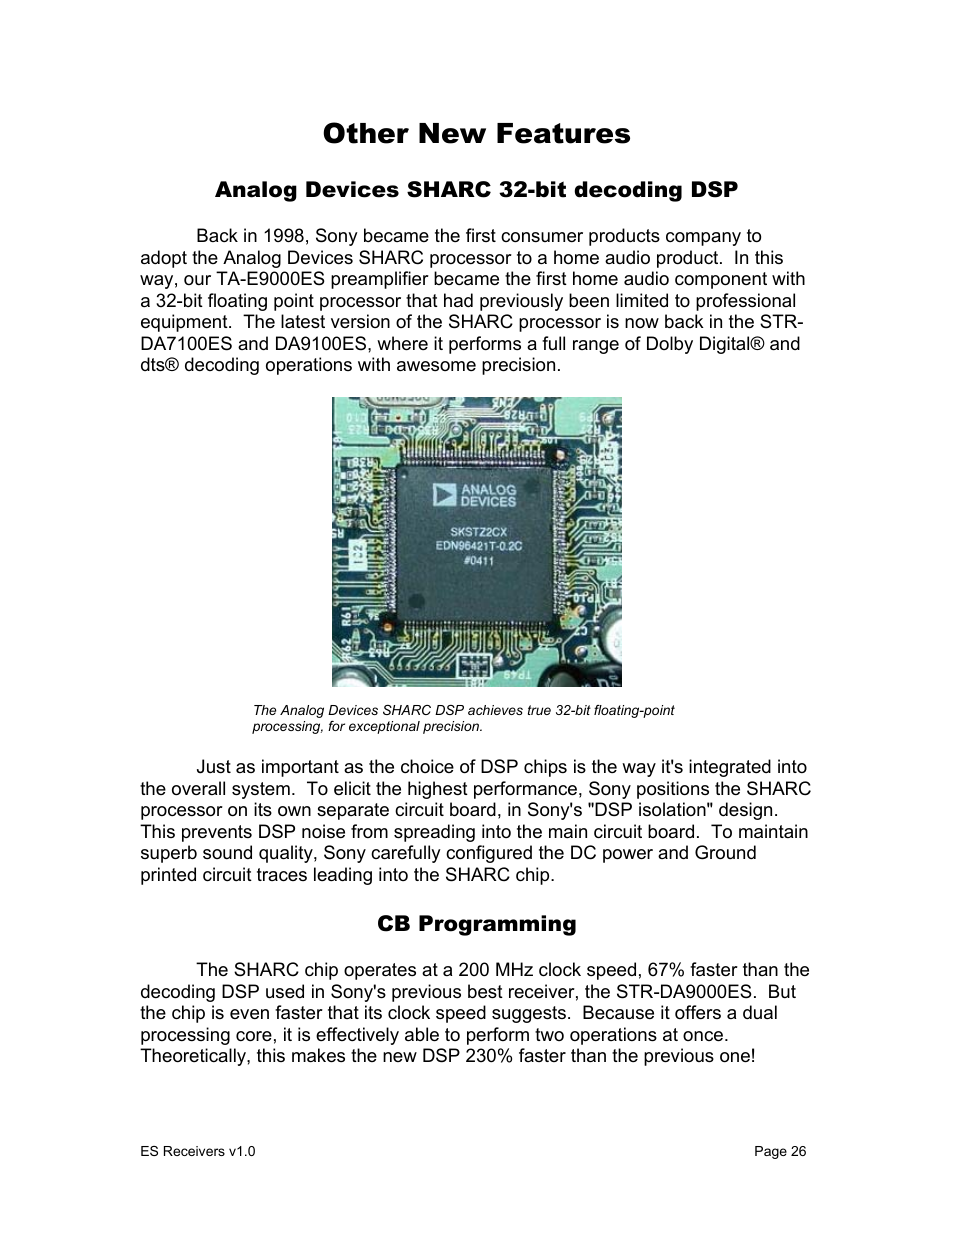 Other new features | Sony STR-DA9000ES User Manual | Page 26